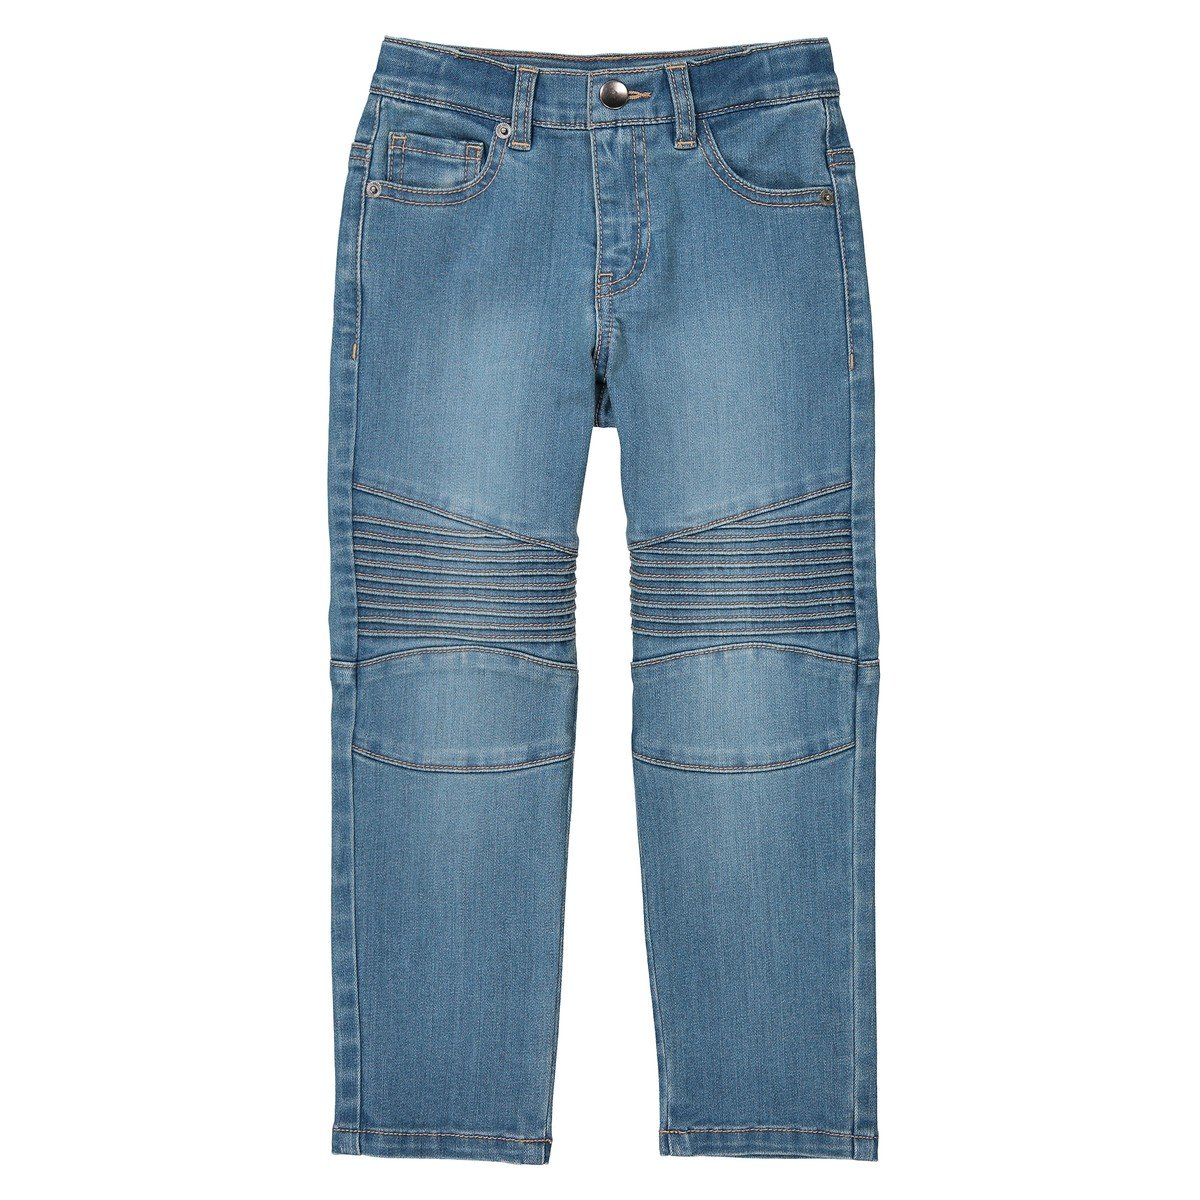 40 in. La Redoute Collections Big Boys Super Tough Jeans 3-12 Years Blue Size 4 Years